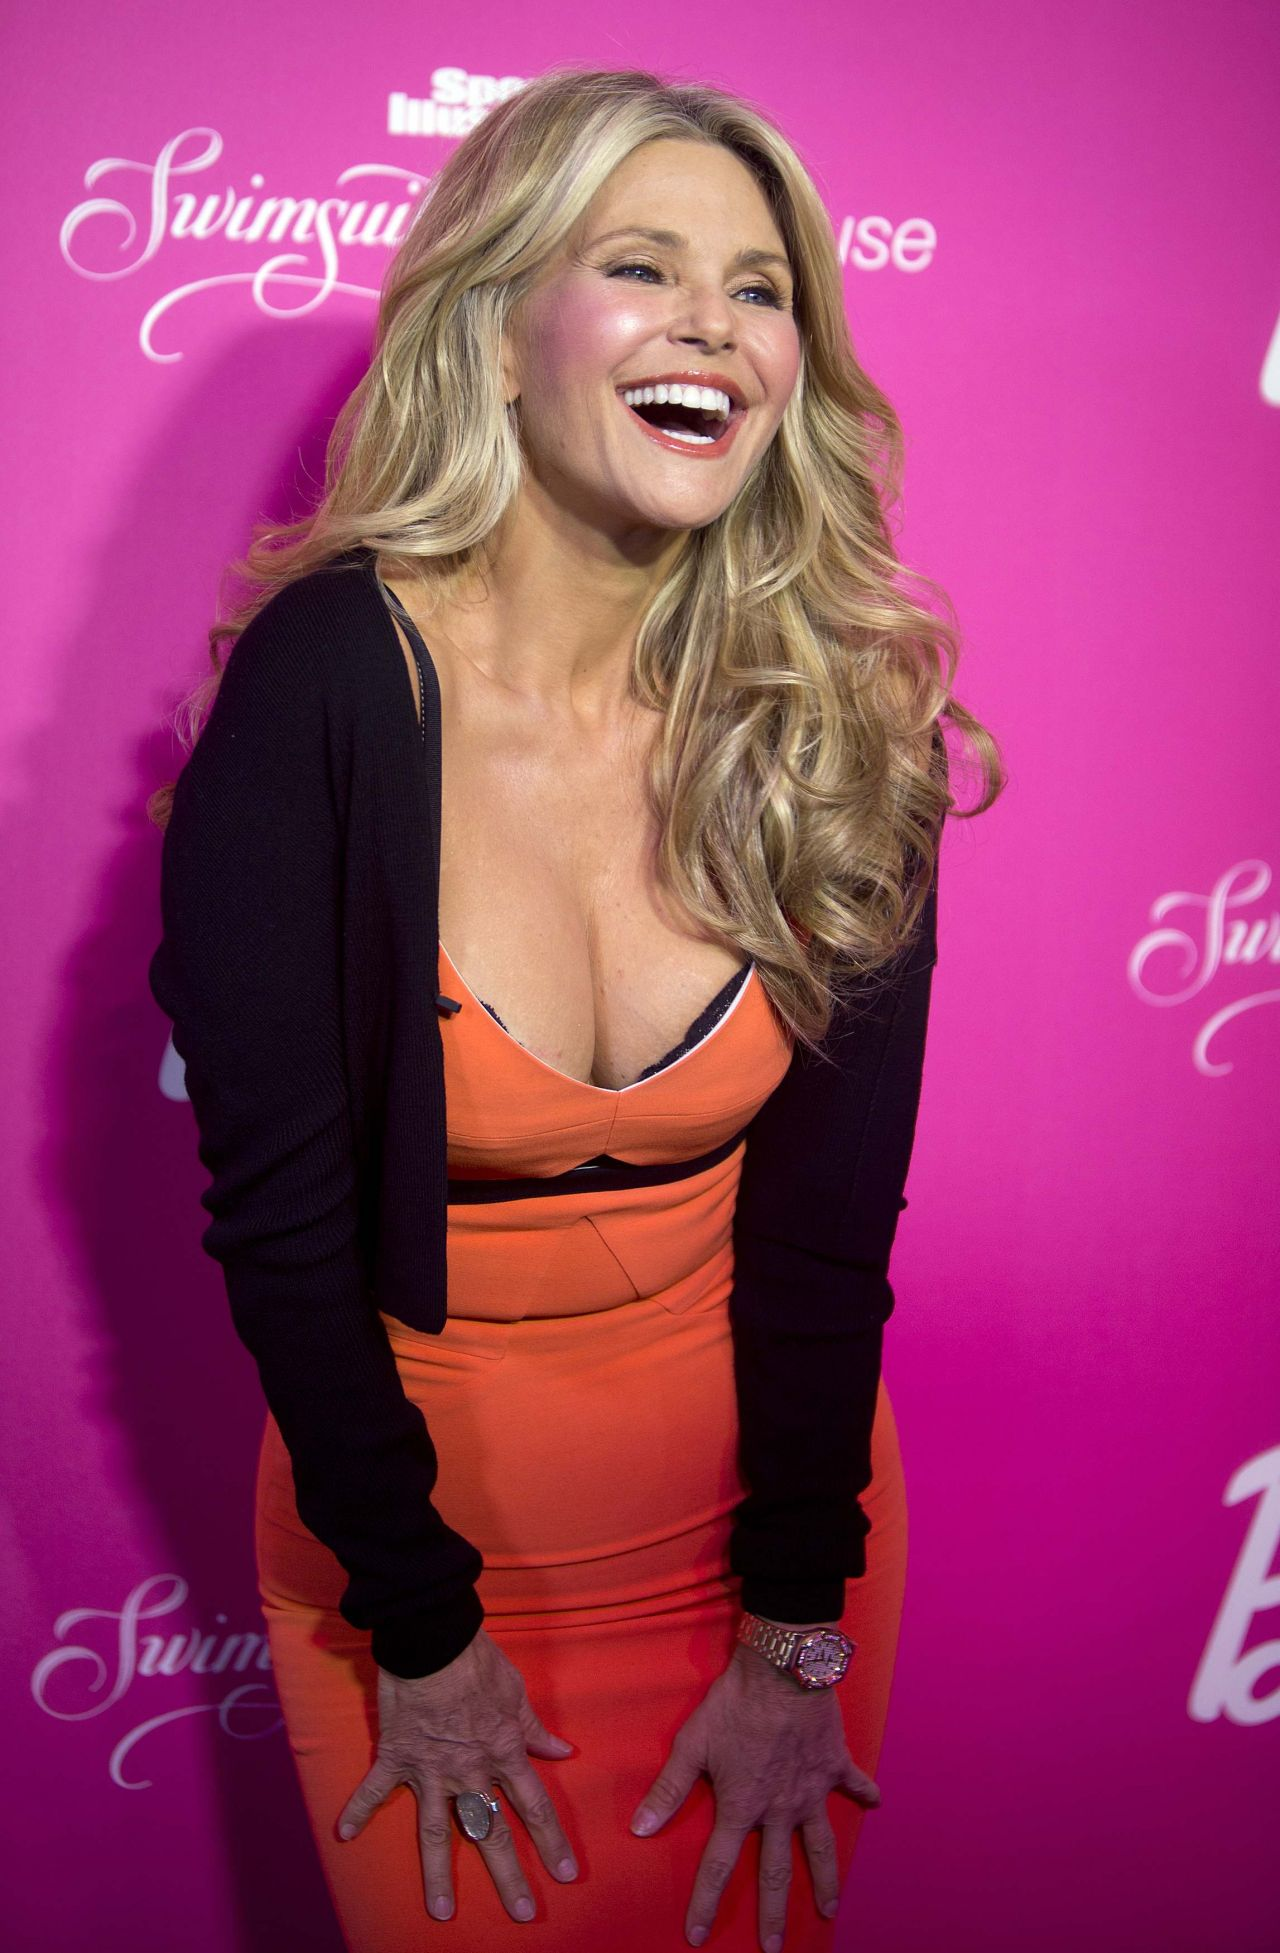 Christie Brinkley Sports Illustrated Swimsuit 50th